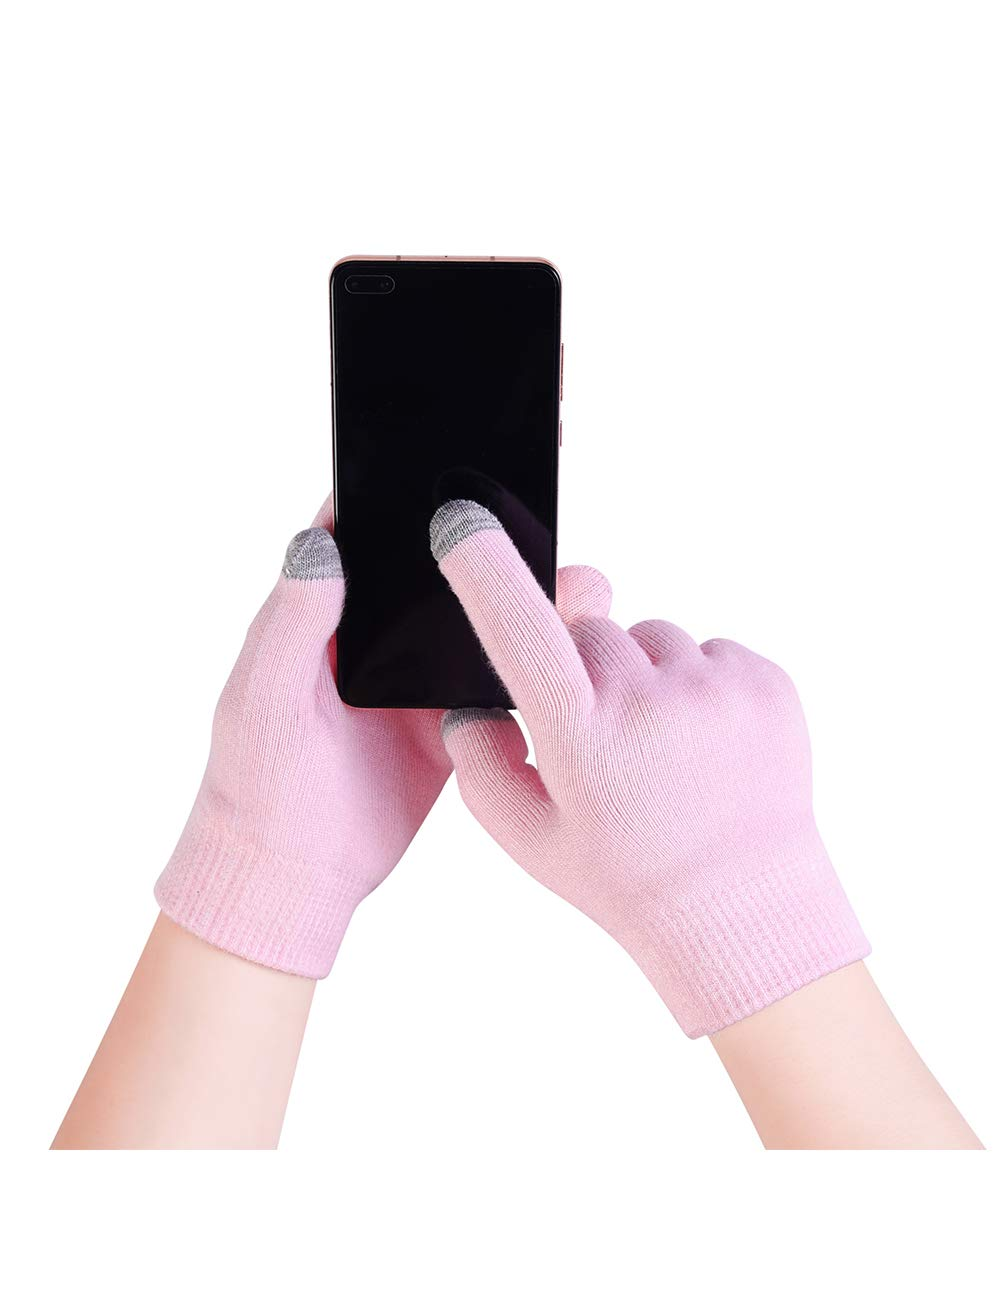 Donfri Gel Moisturizing Gloves Day Night Instantly Repair Eczema Dry Rough and Cracked Hands Sleeping Gloves Spa Gloves with Touchscreen (Full finger with touch screen) : Beauty